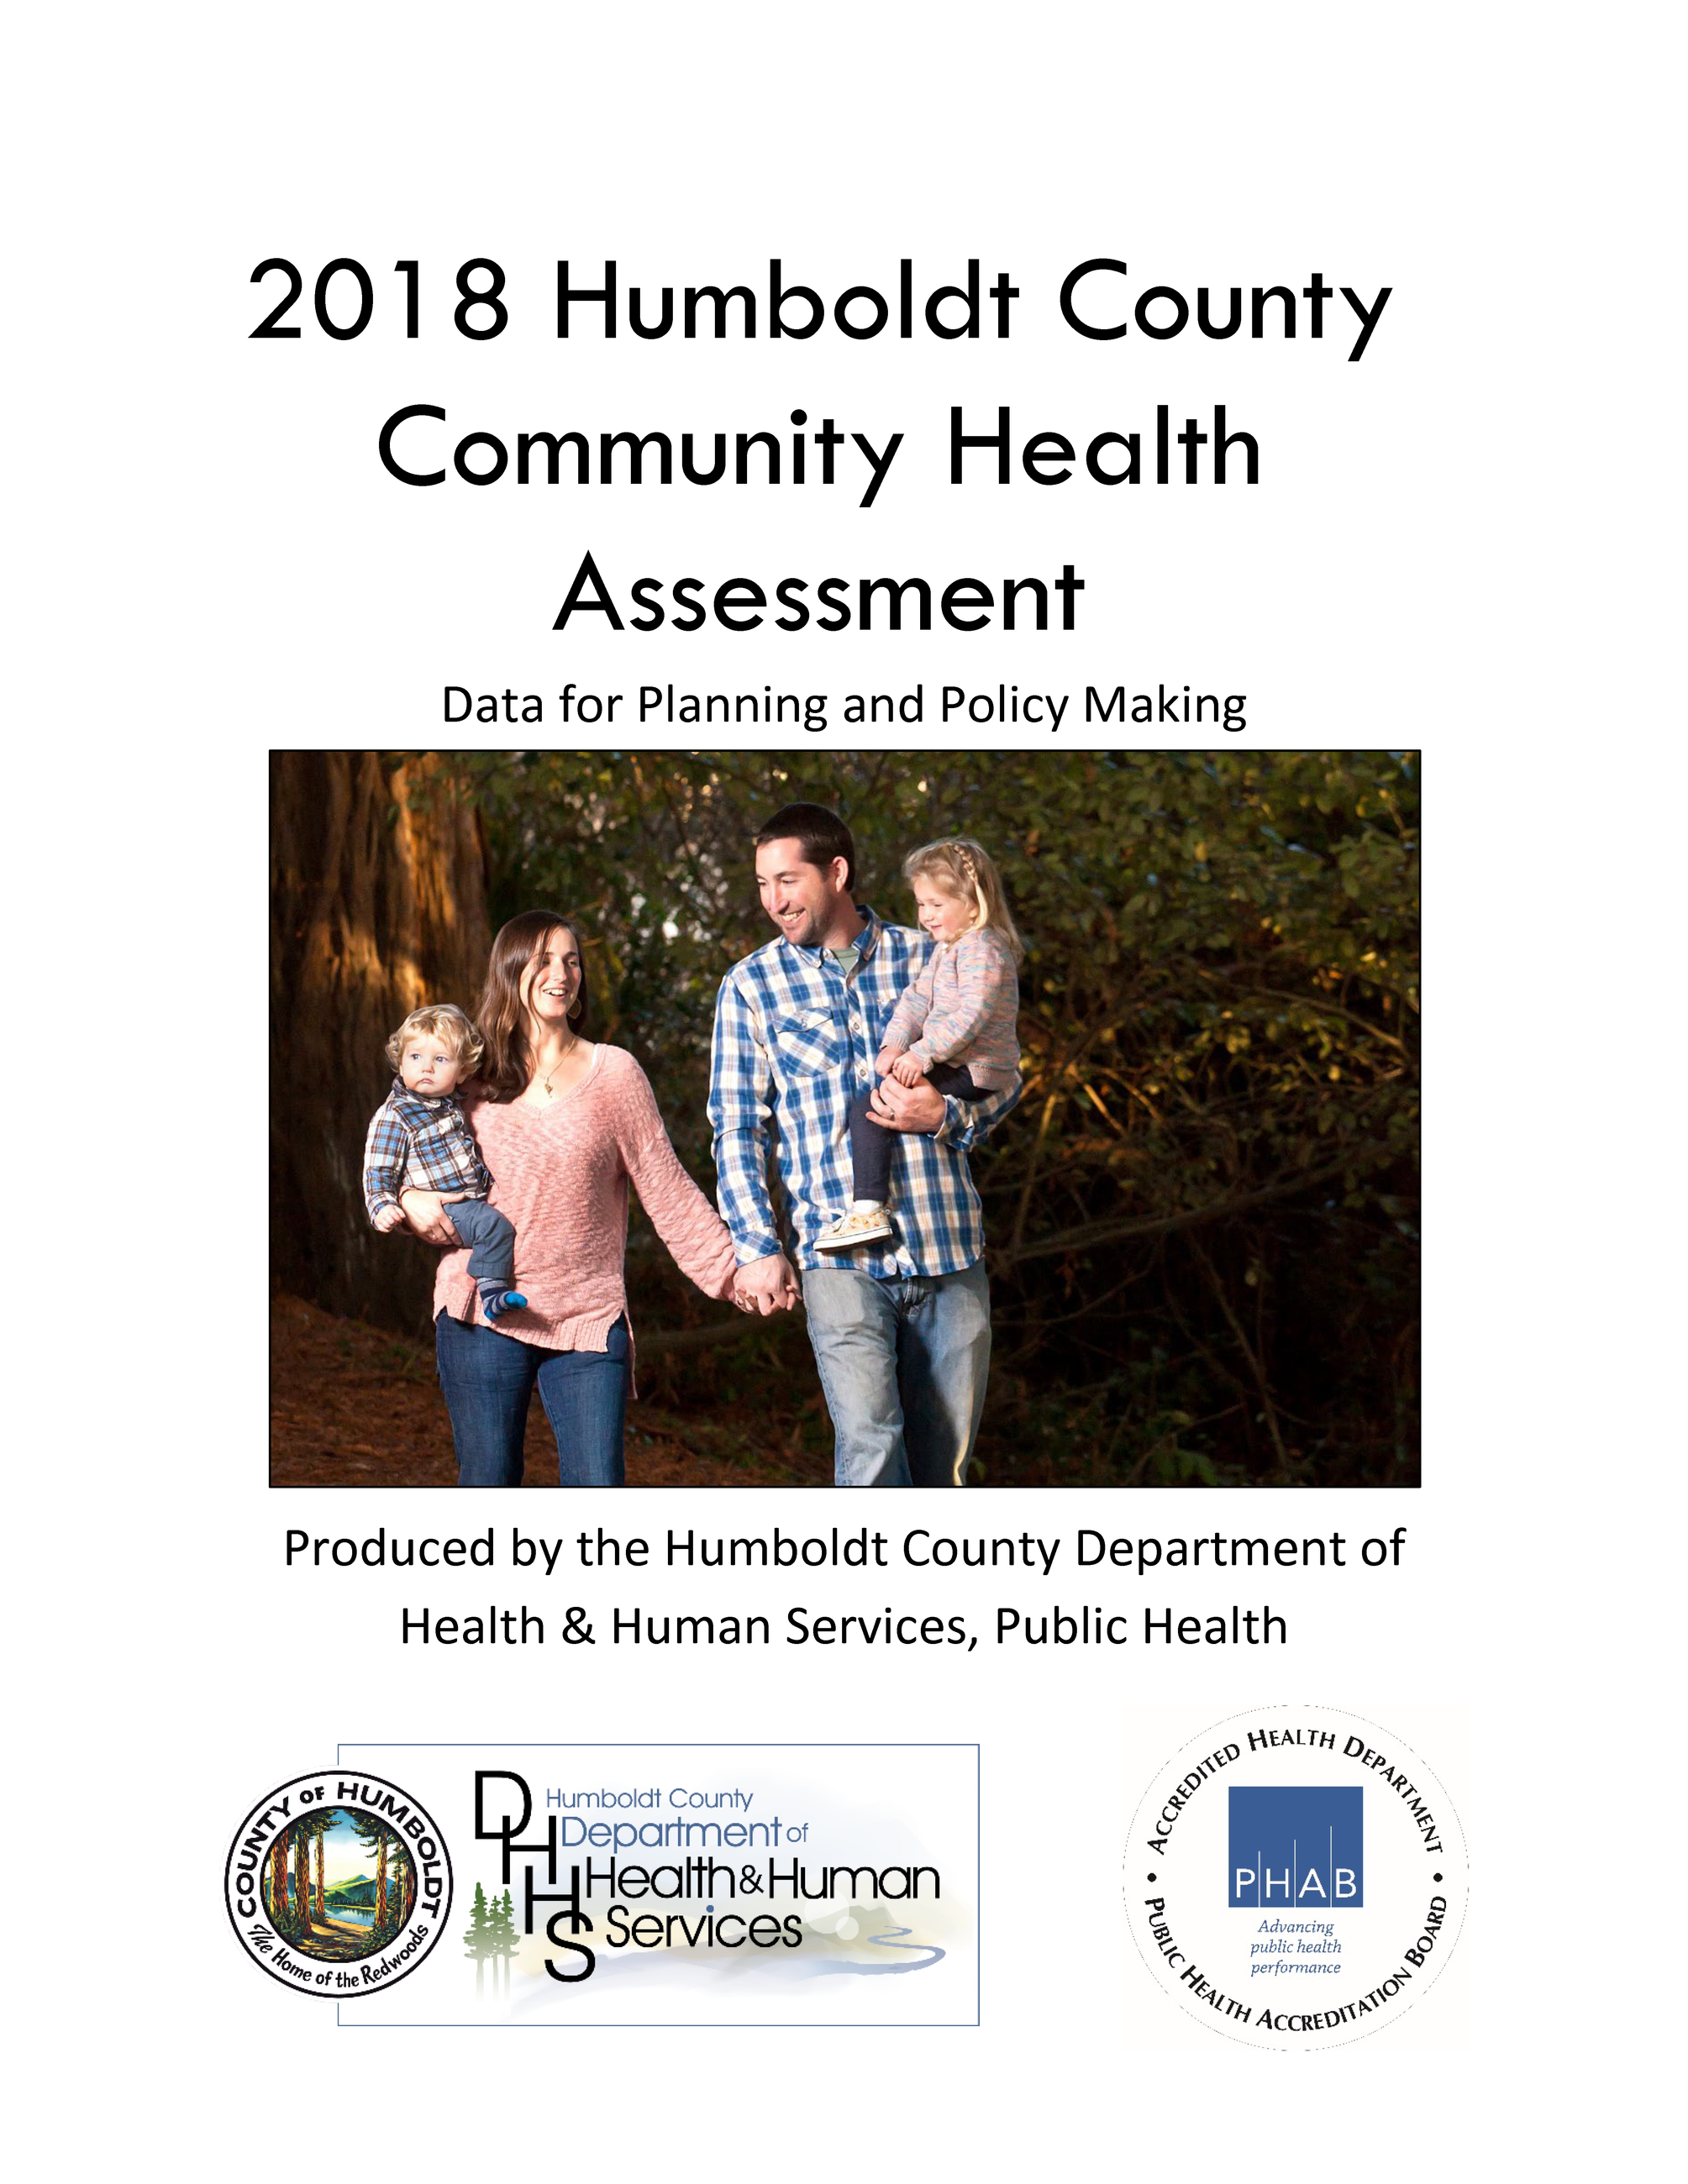 2018 Humboldt County Community Health Assessment Cover